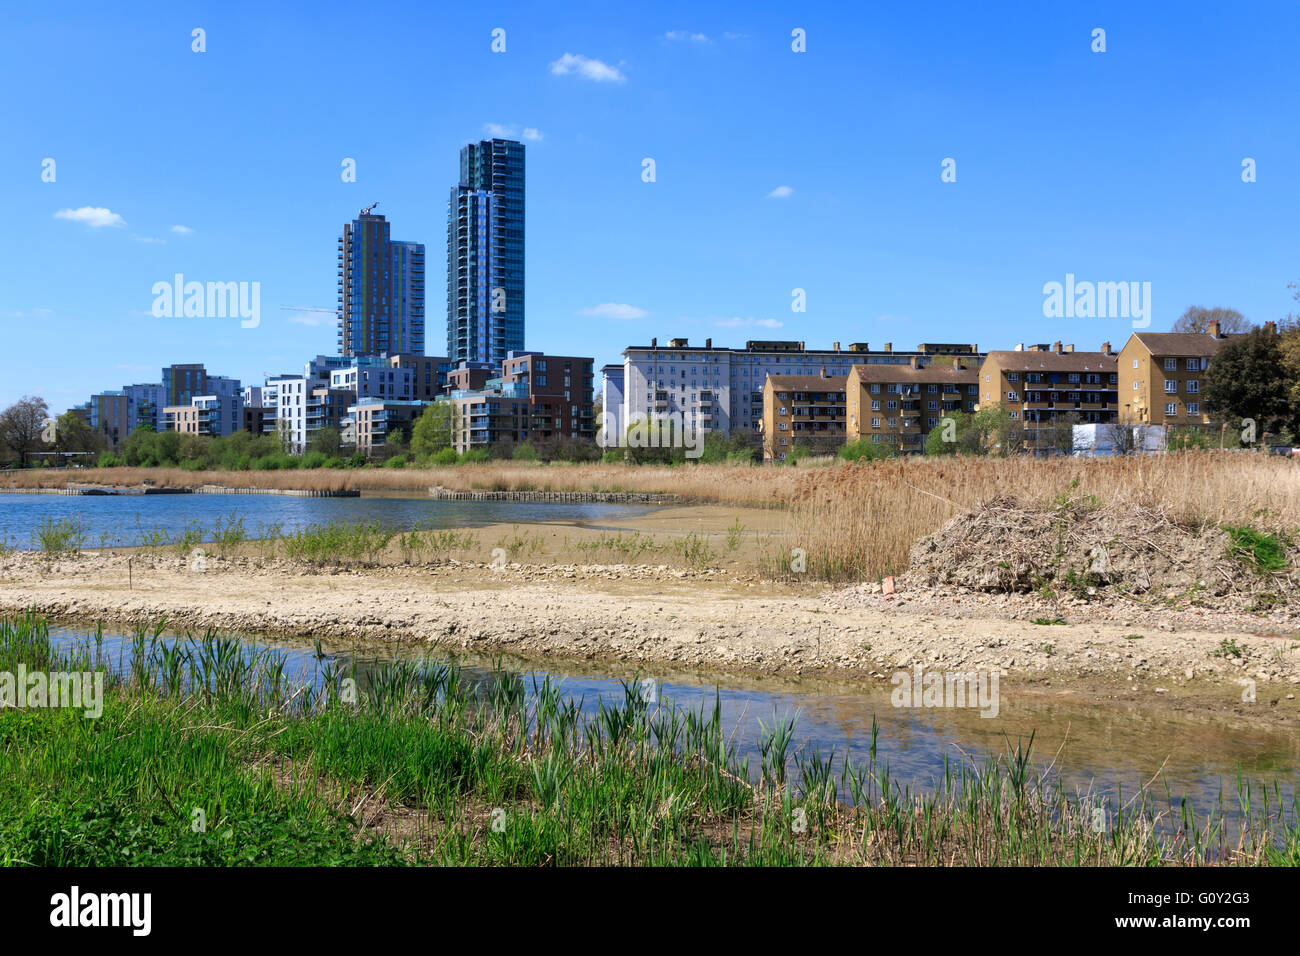 Woodberry wetlands nature reserve at Woodberry Down in London on a sunny day - Stock Image